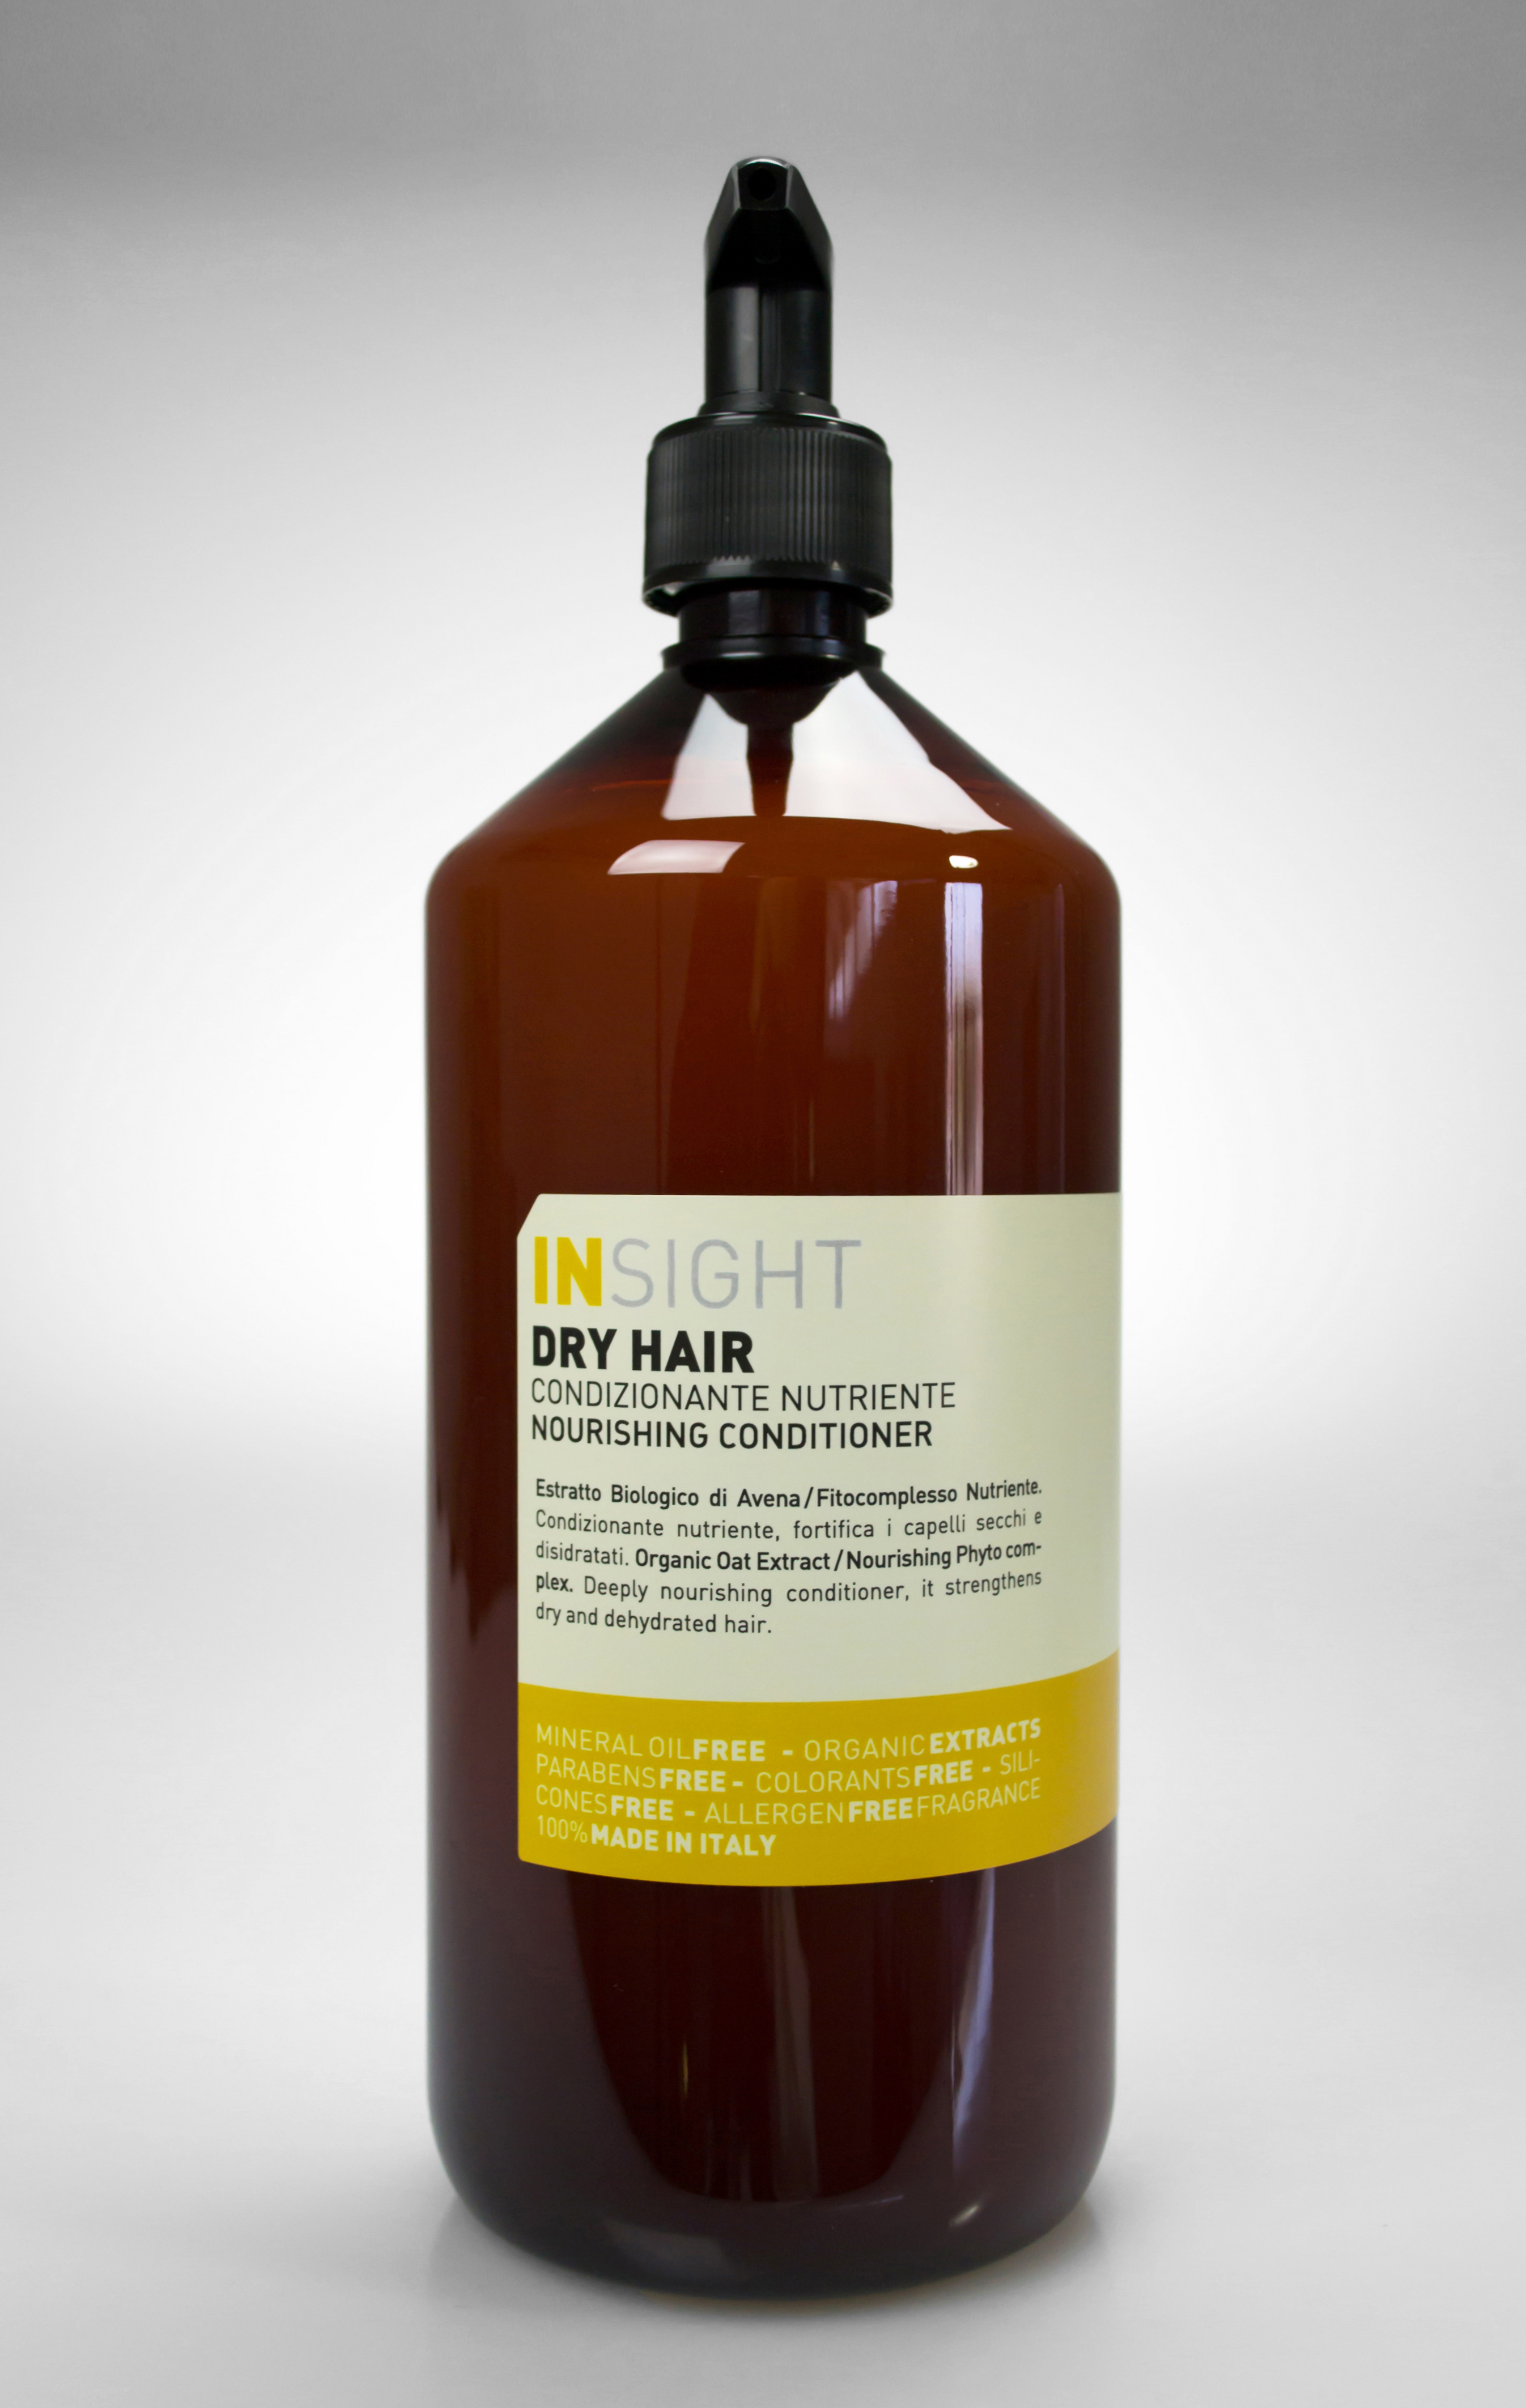 DRY HAIR NOURISHING CONDITIONER